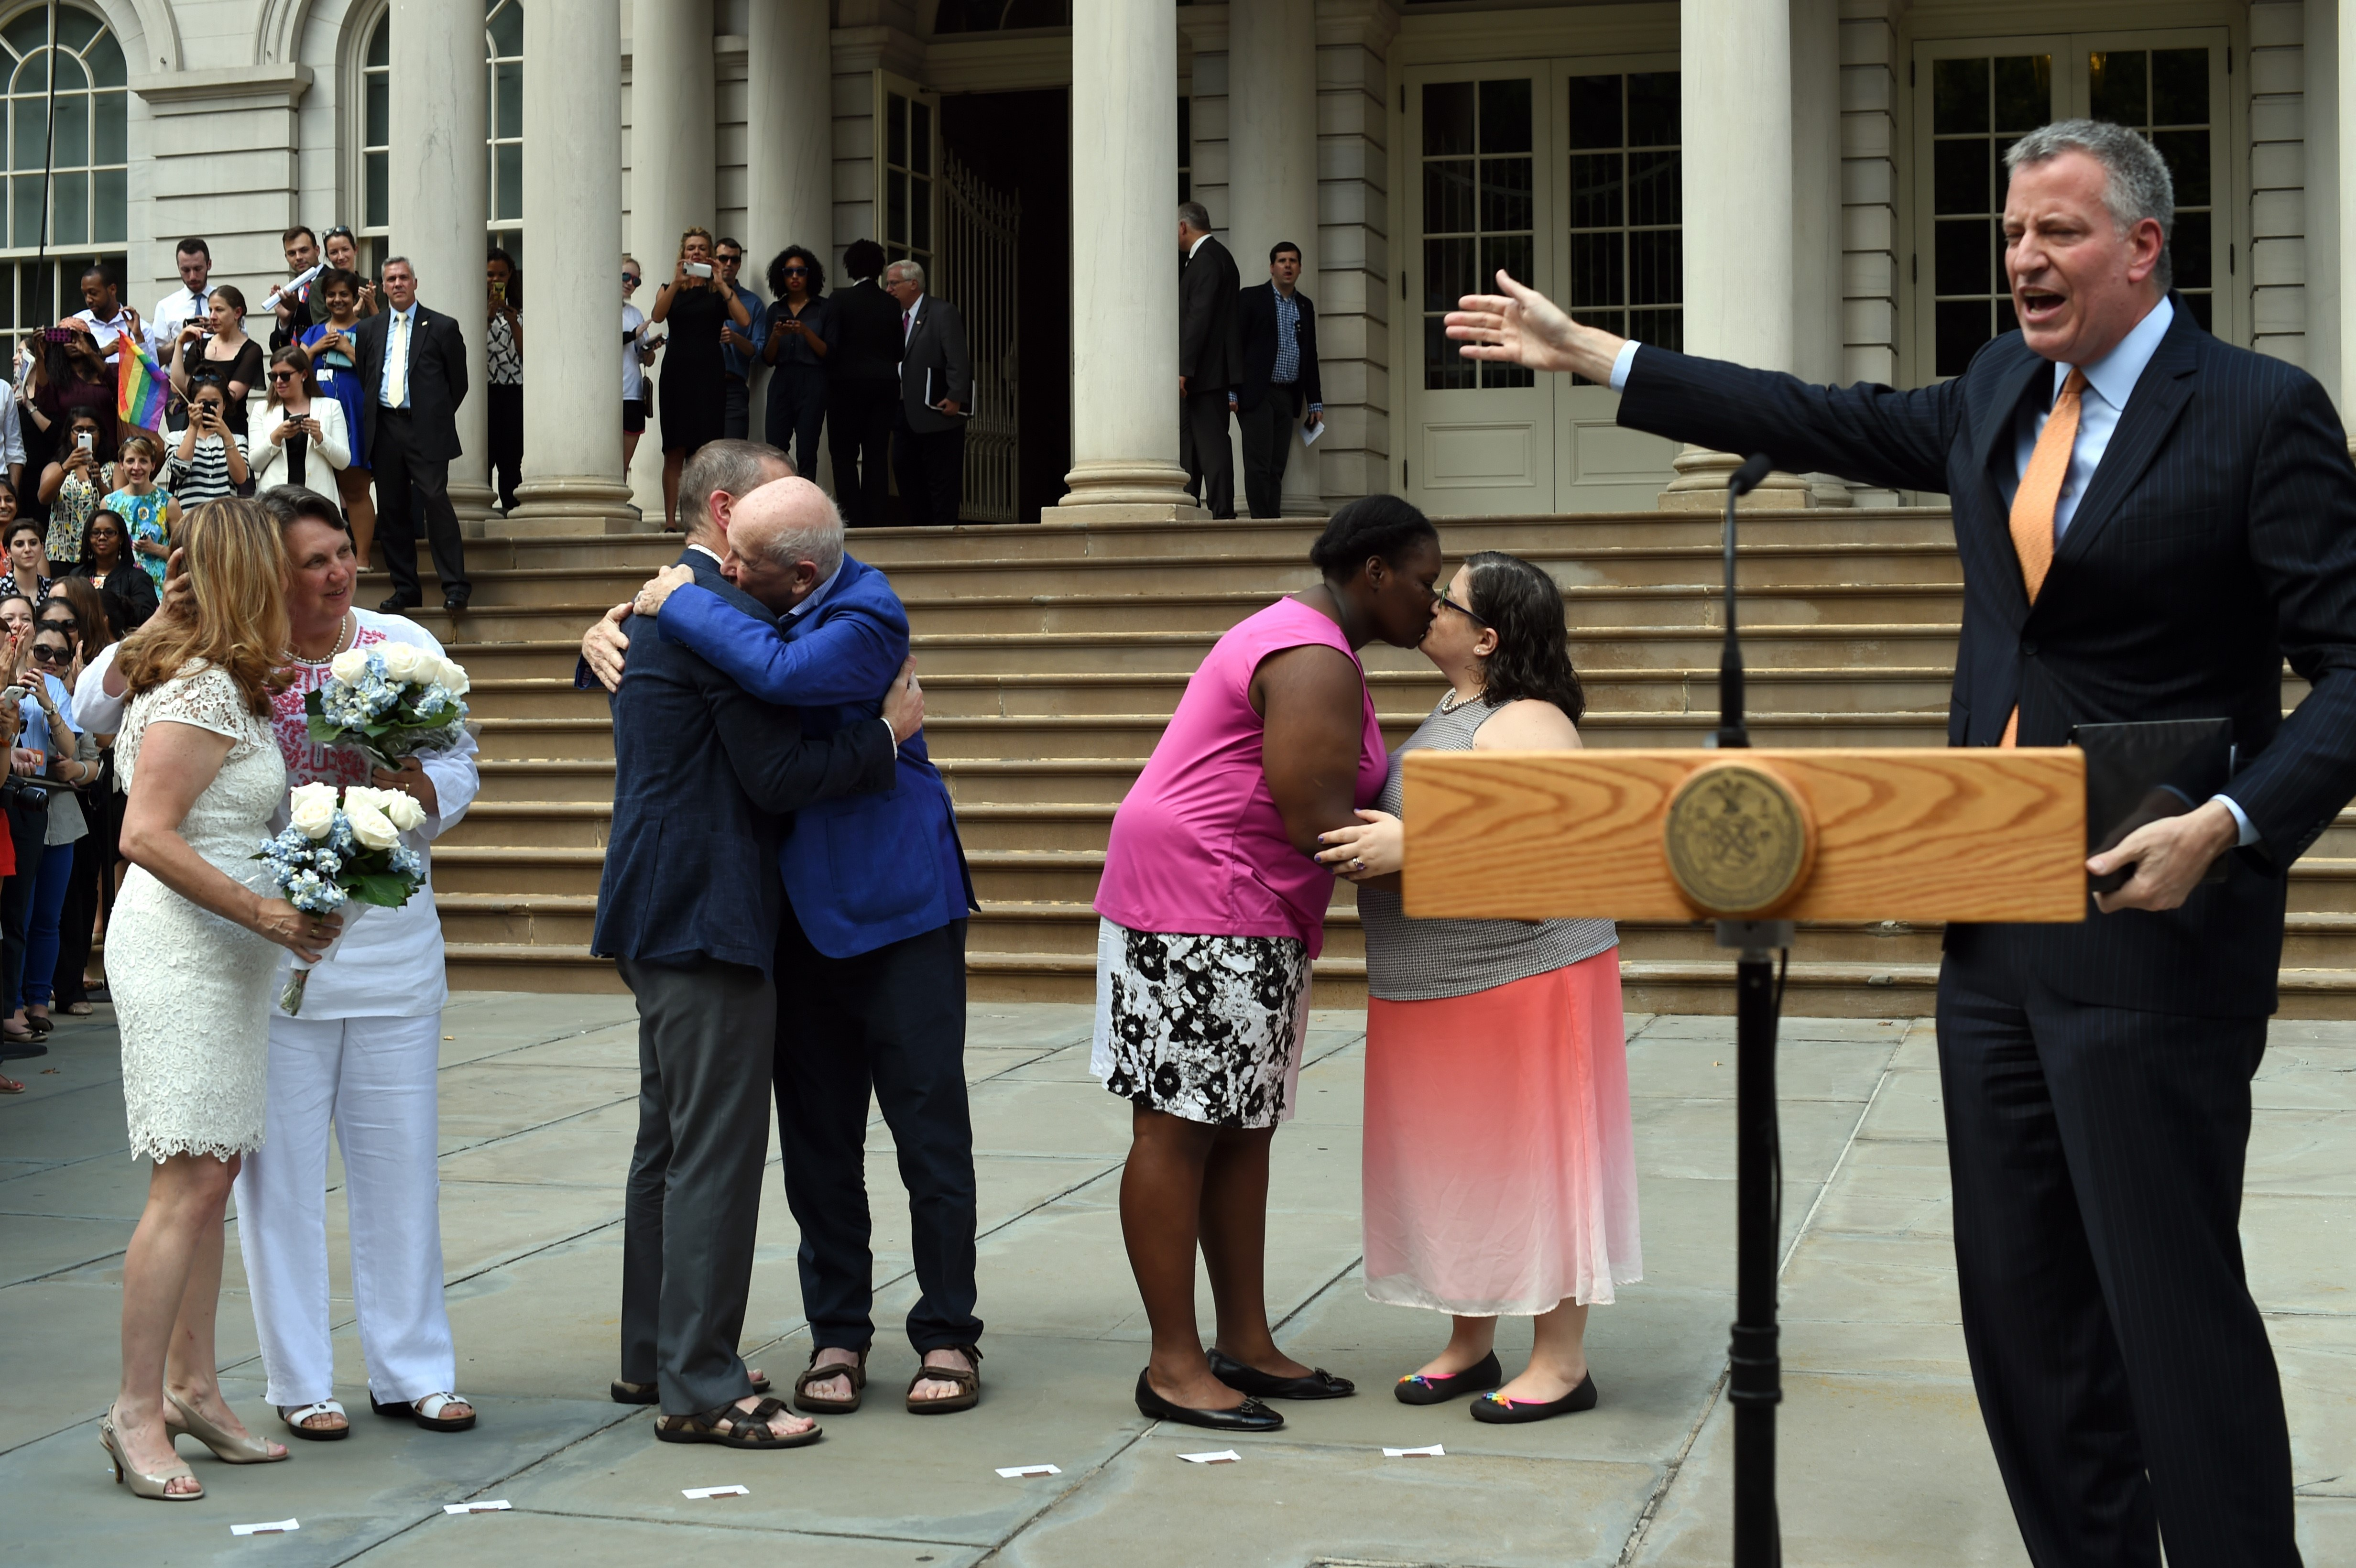 New York City Mayor Bill de Blasio officiates the marriages of Denise Niewinski and Cindy Jackson, Terrence McNally and Thomas Kirdahy and Sarah Joseph and Katrina Council on the steps of City Hall (Photo: TIMOTHY A. CLARY/AFP/Getty Images)